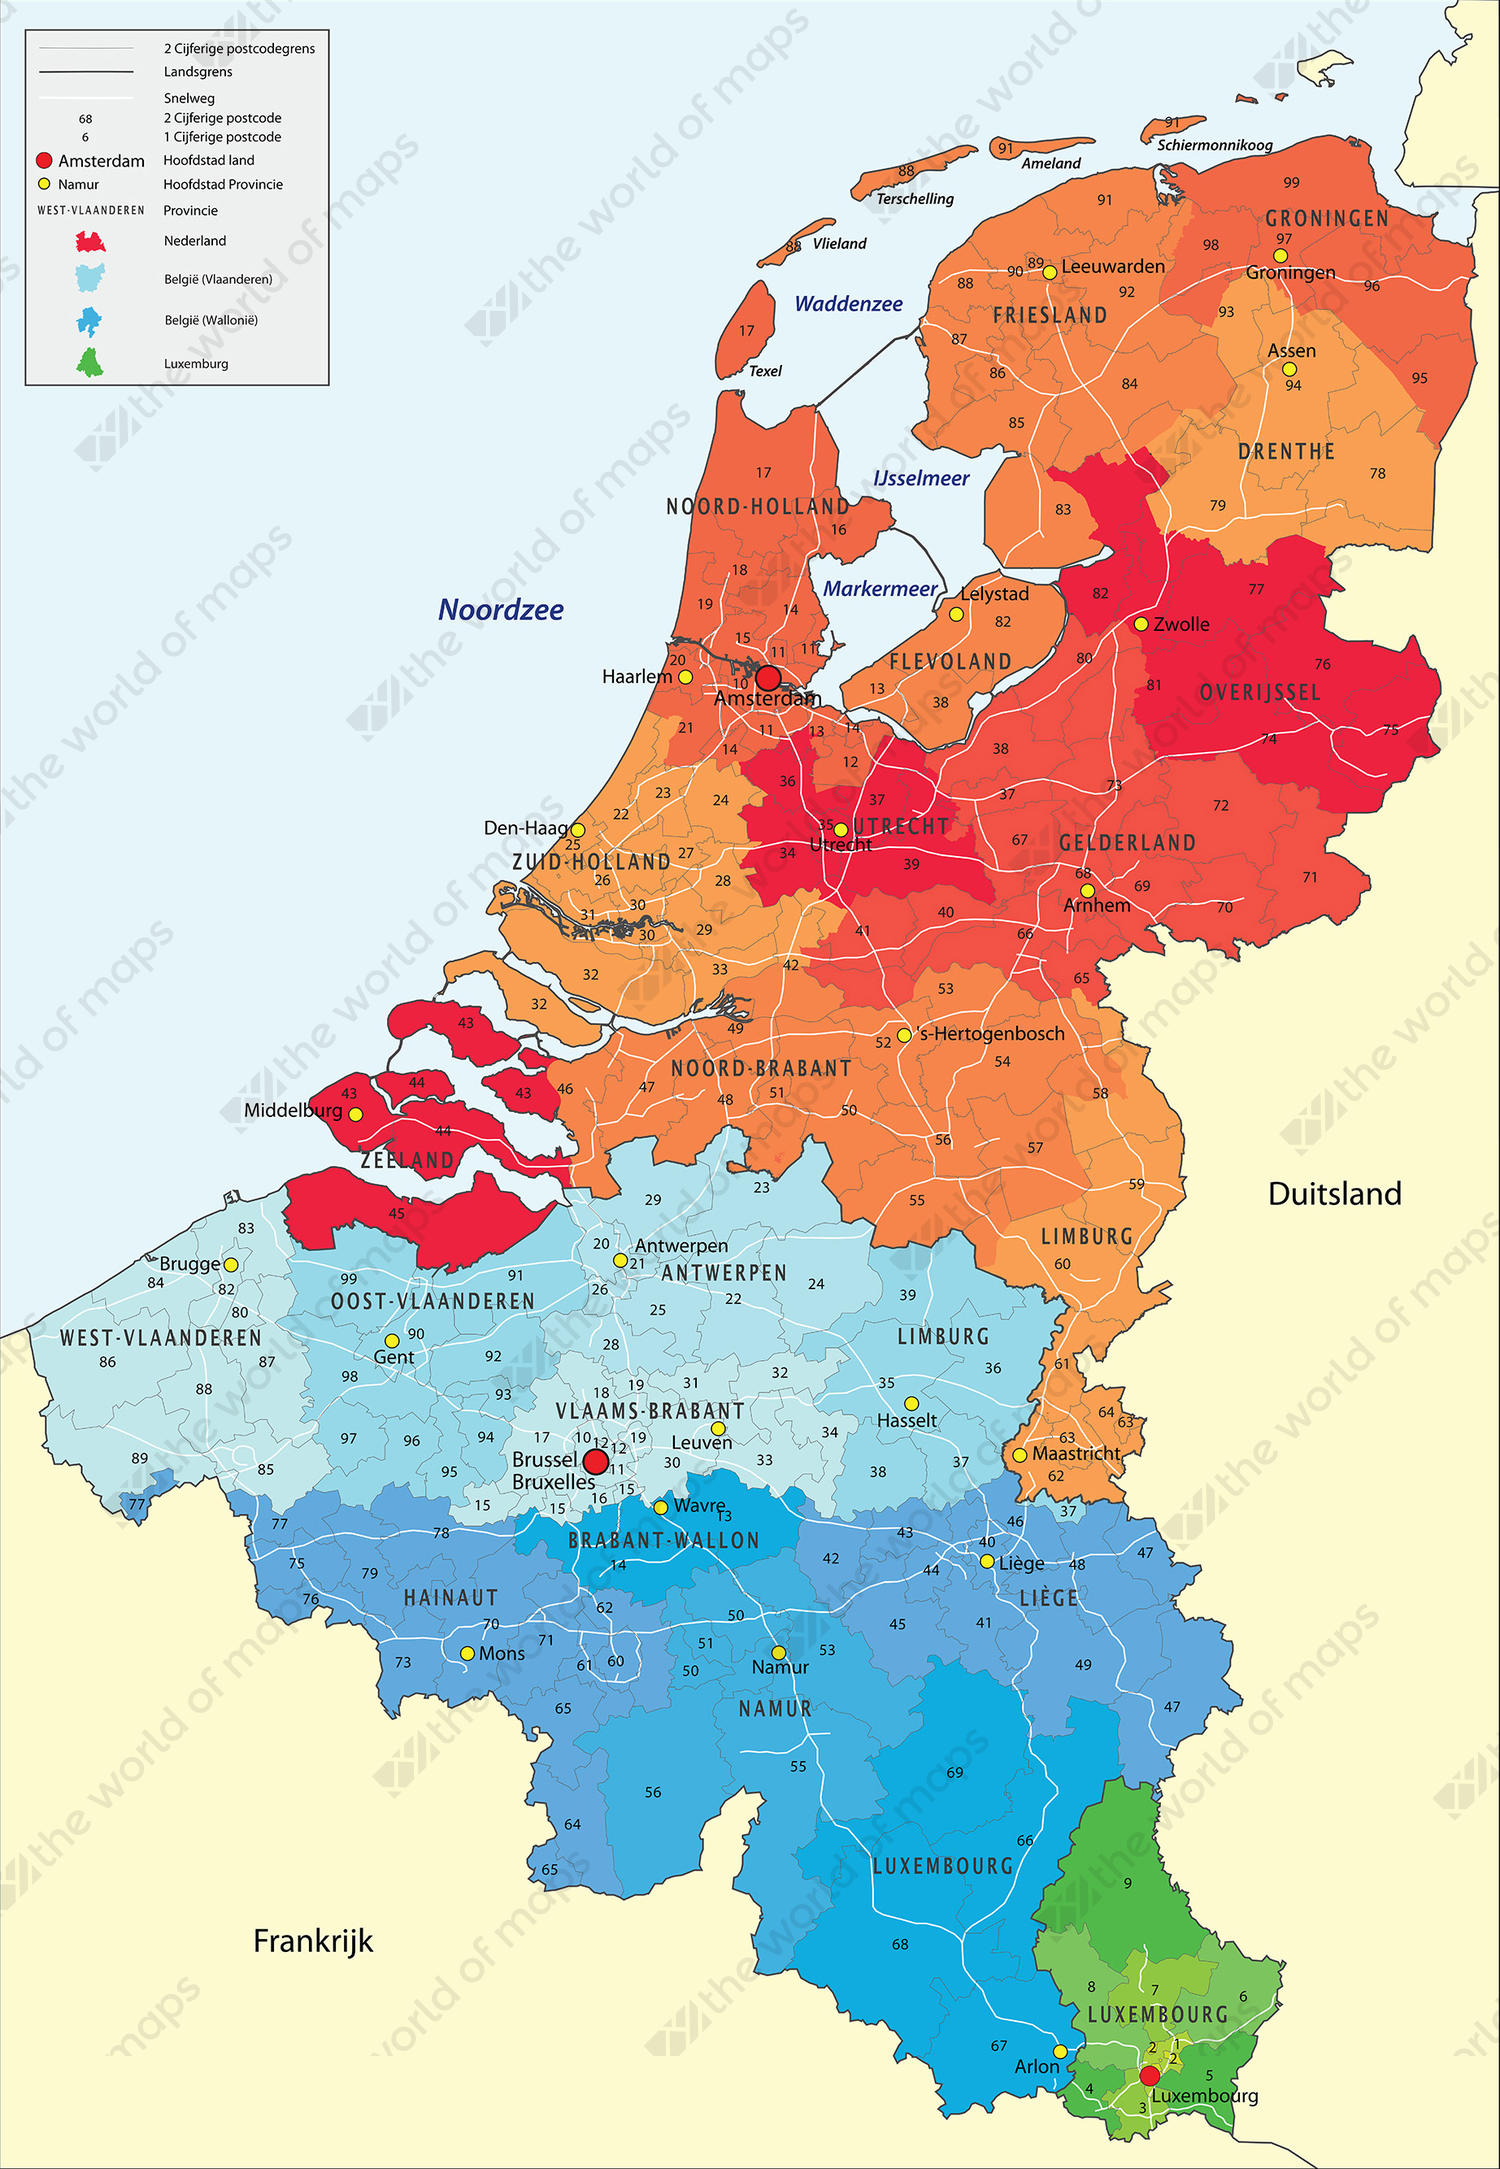 PC-maps Belgium | The World of Maps.com on geographical map norway, geographical map hungary, physical map europe belgium, geographical map ireland, aerial photograph of belgium, physical characteristics of belgium, geographical map portugal, detailed map belgium, geographical map romania, geographical map denmark, geographical map finland, major rivers of belgium, geographical map germany,